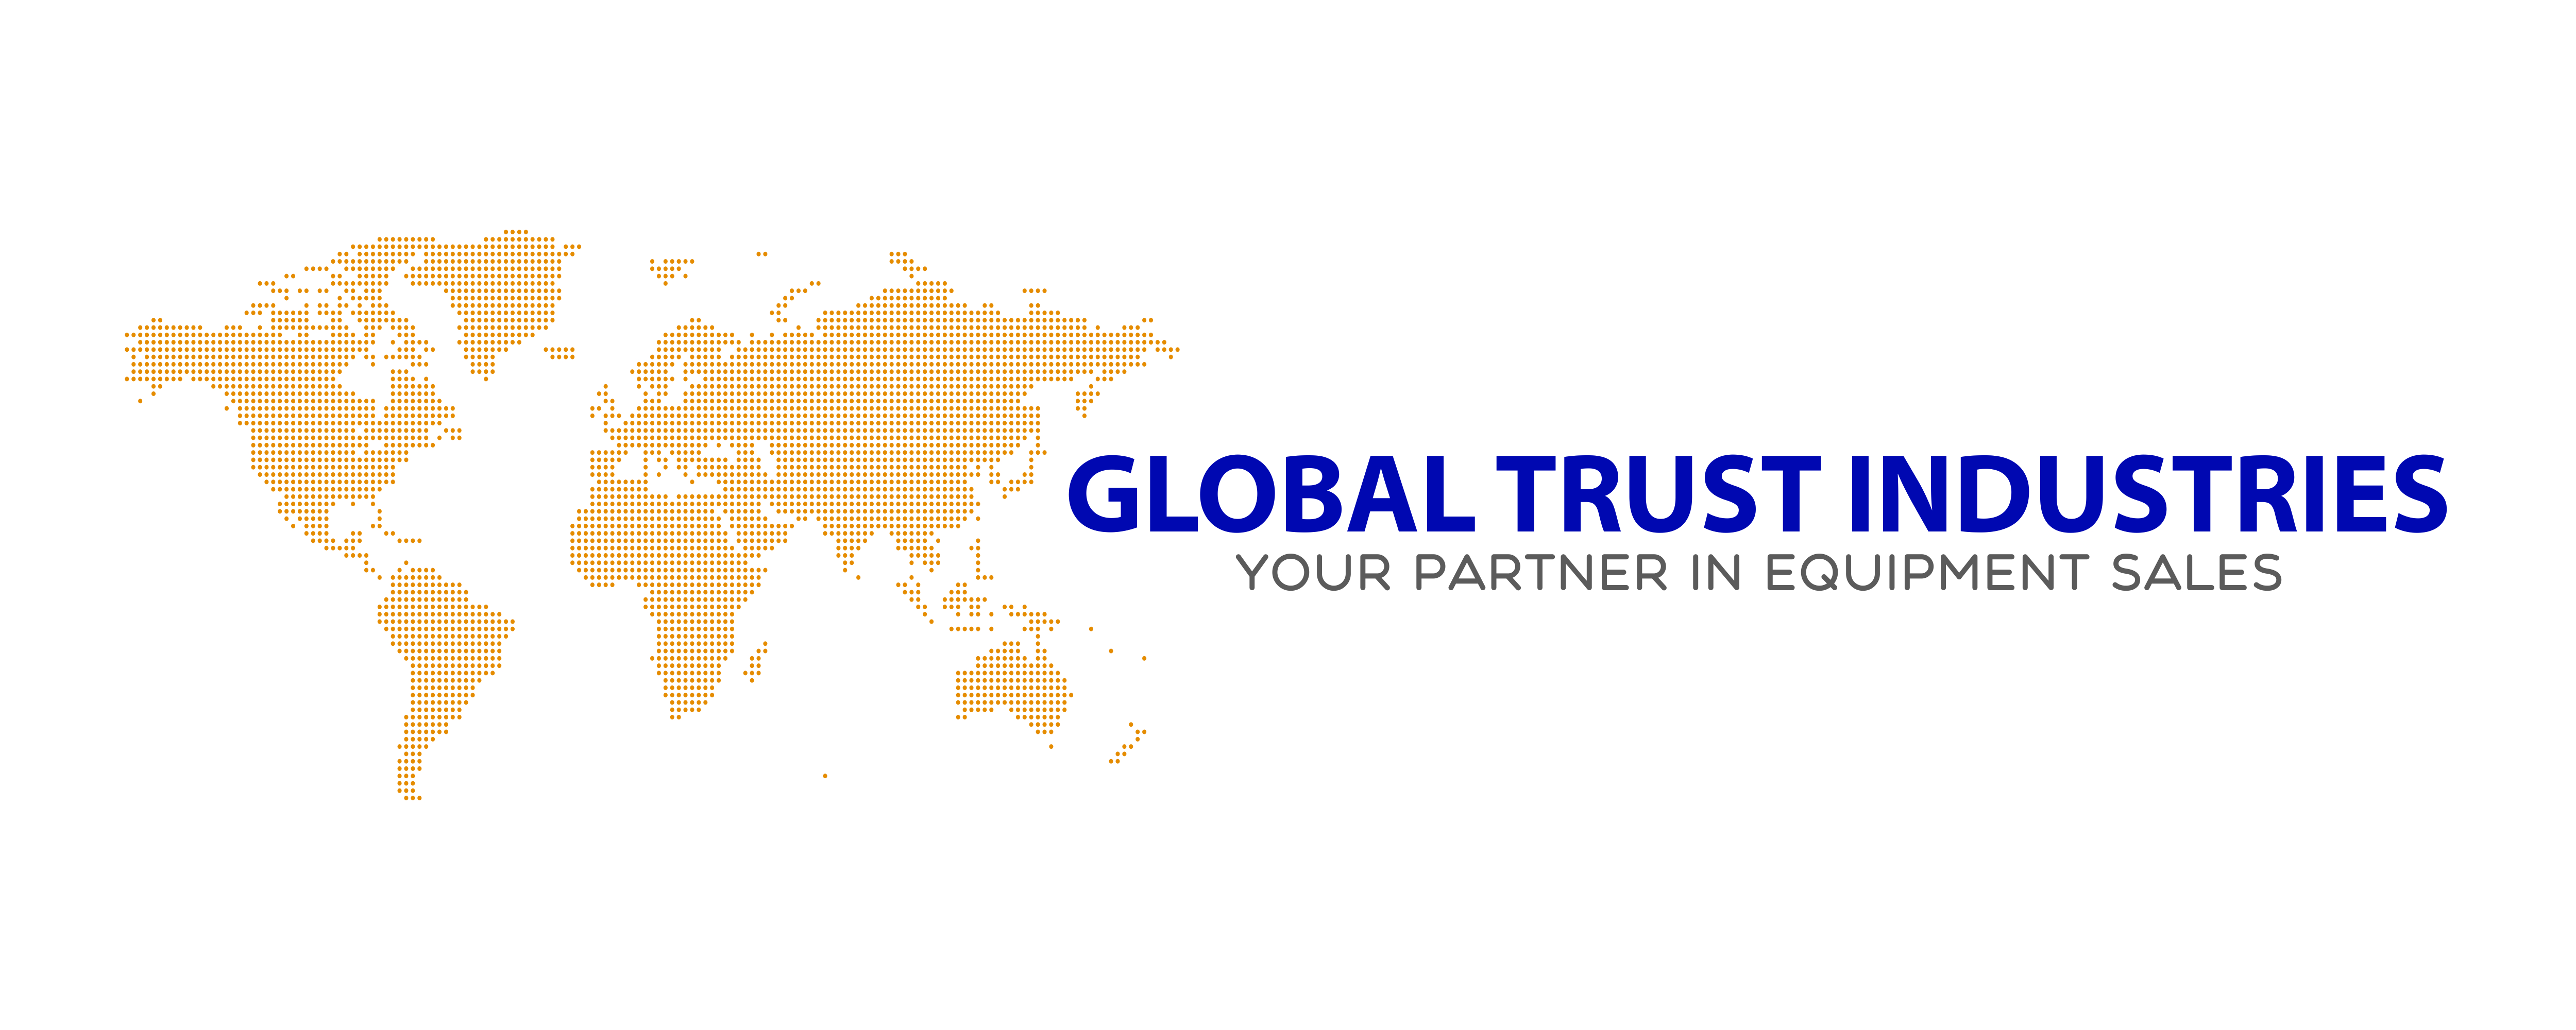 Find Global Trust Industries's adverts listed on Junk Mail